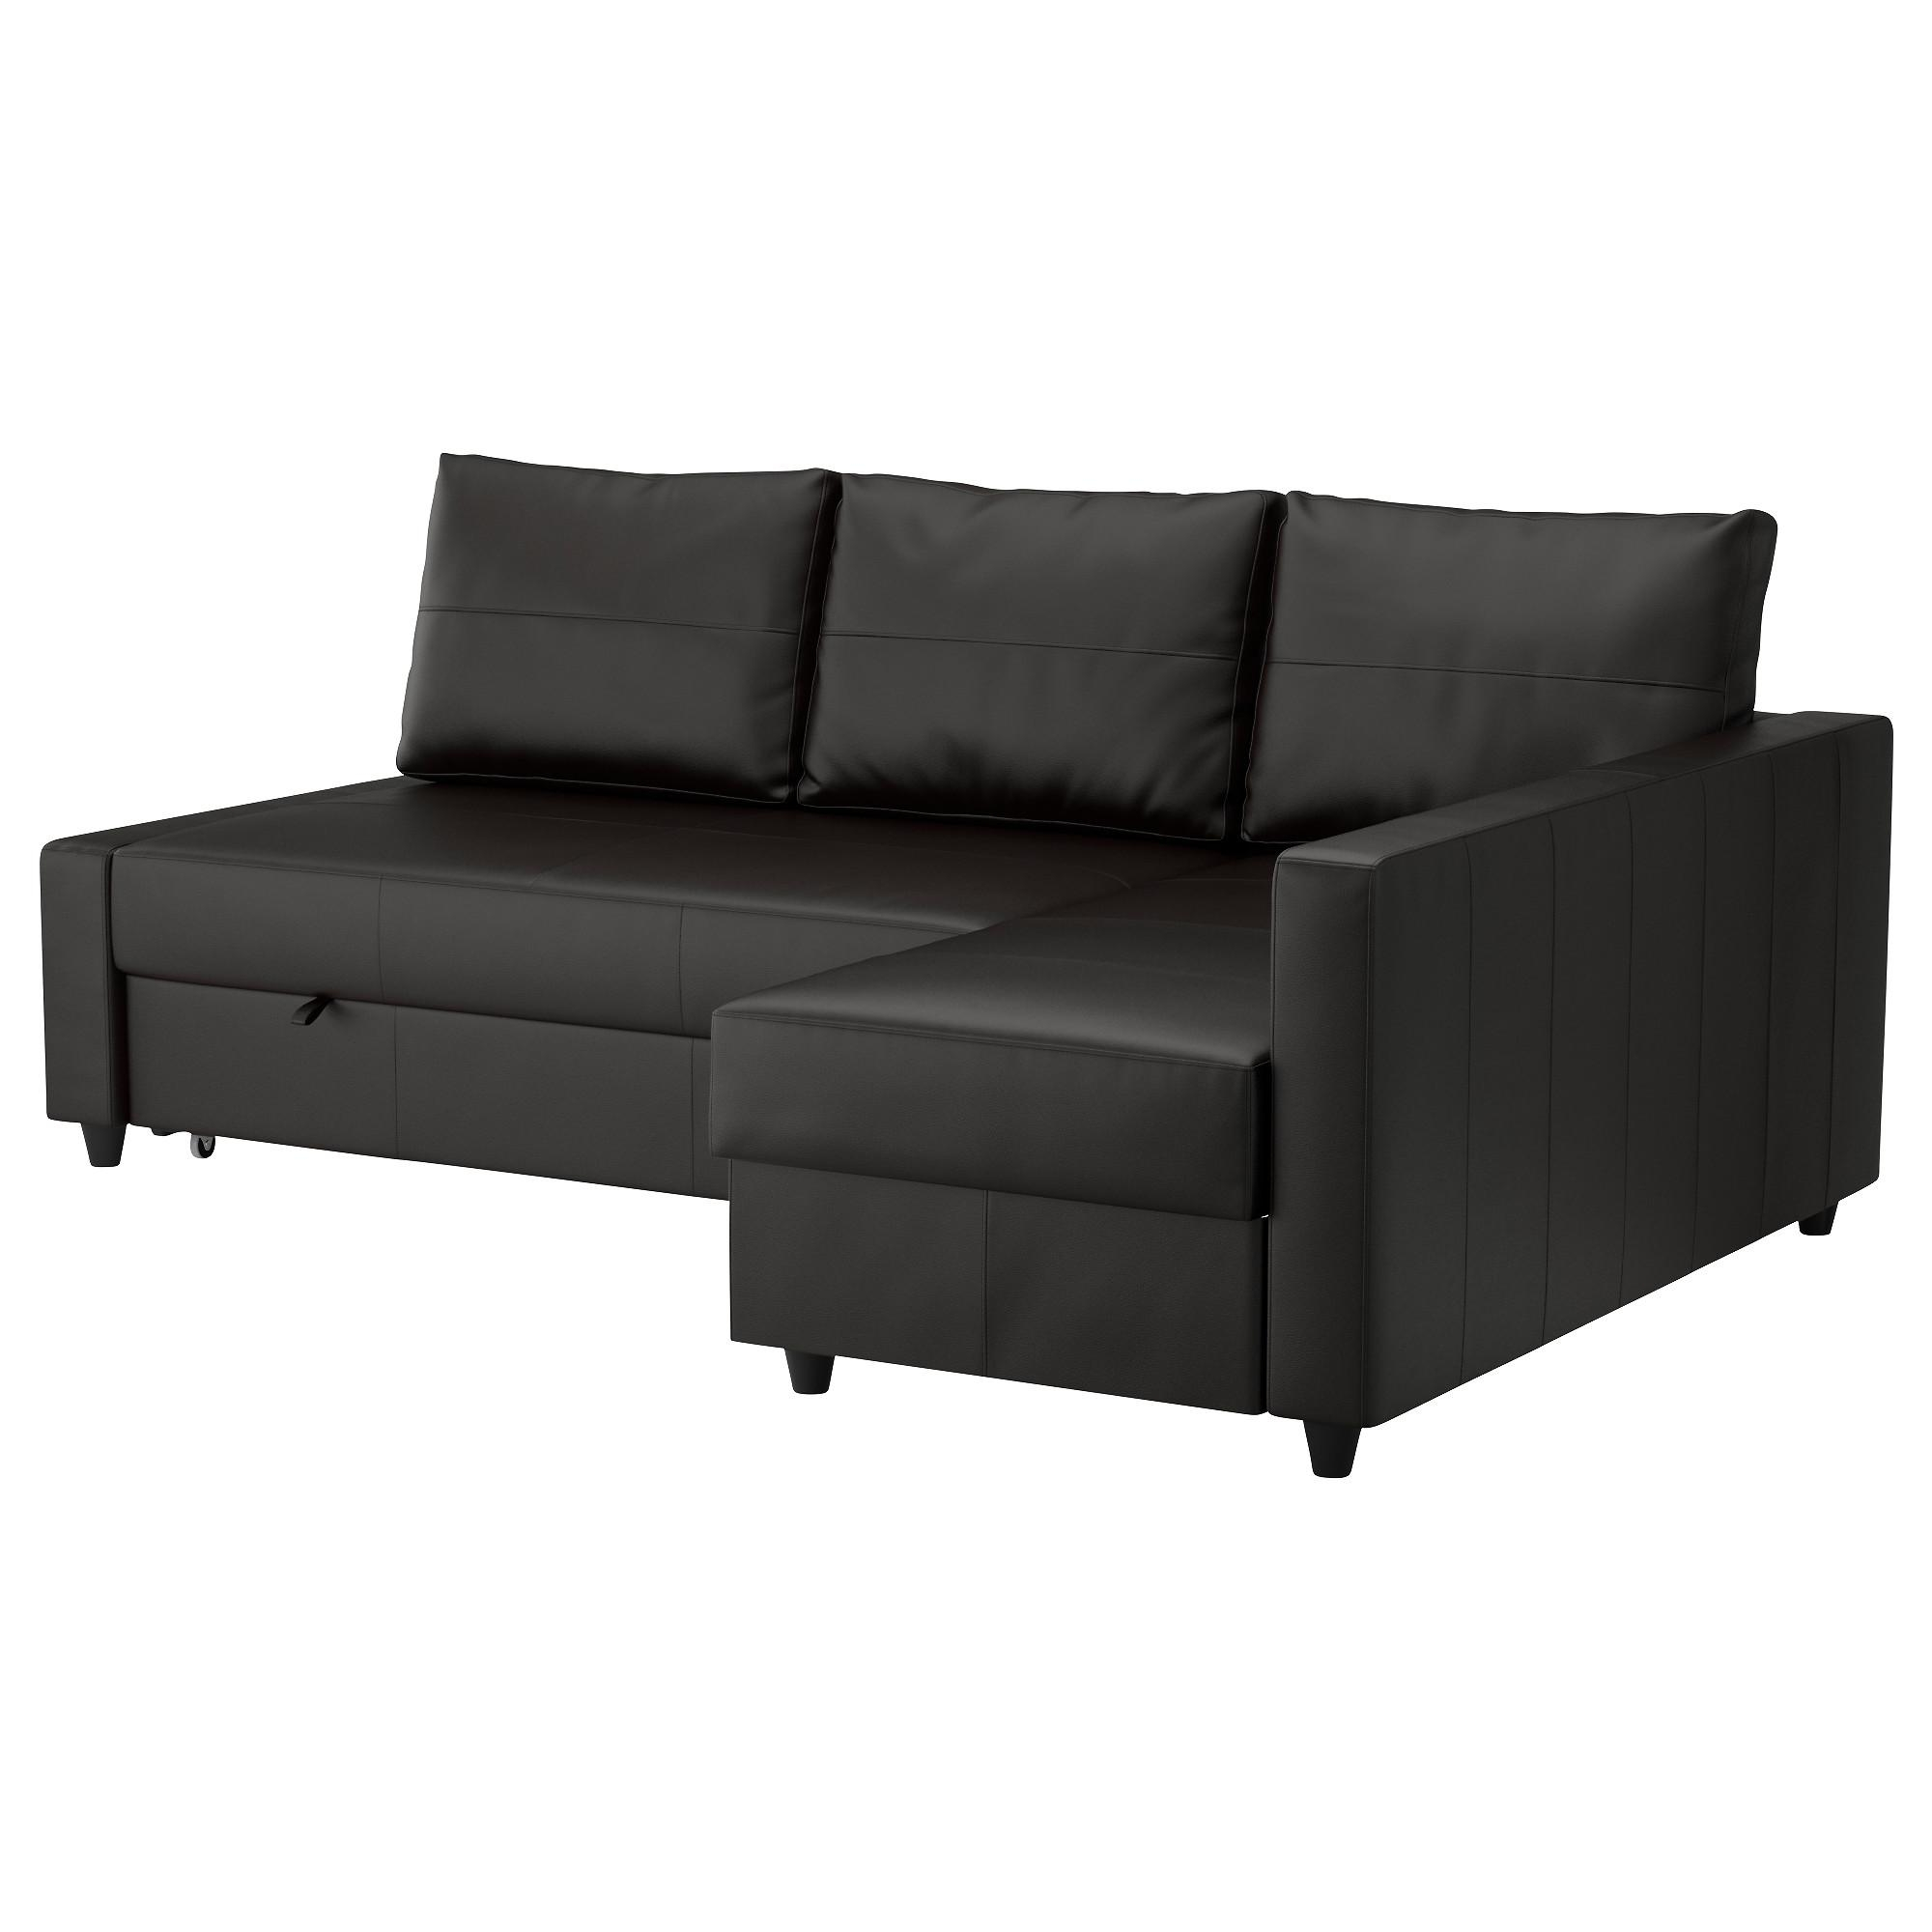 chaise sofa bed ikea denver cleaning 20 photos lounge ideas